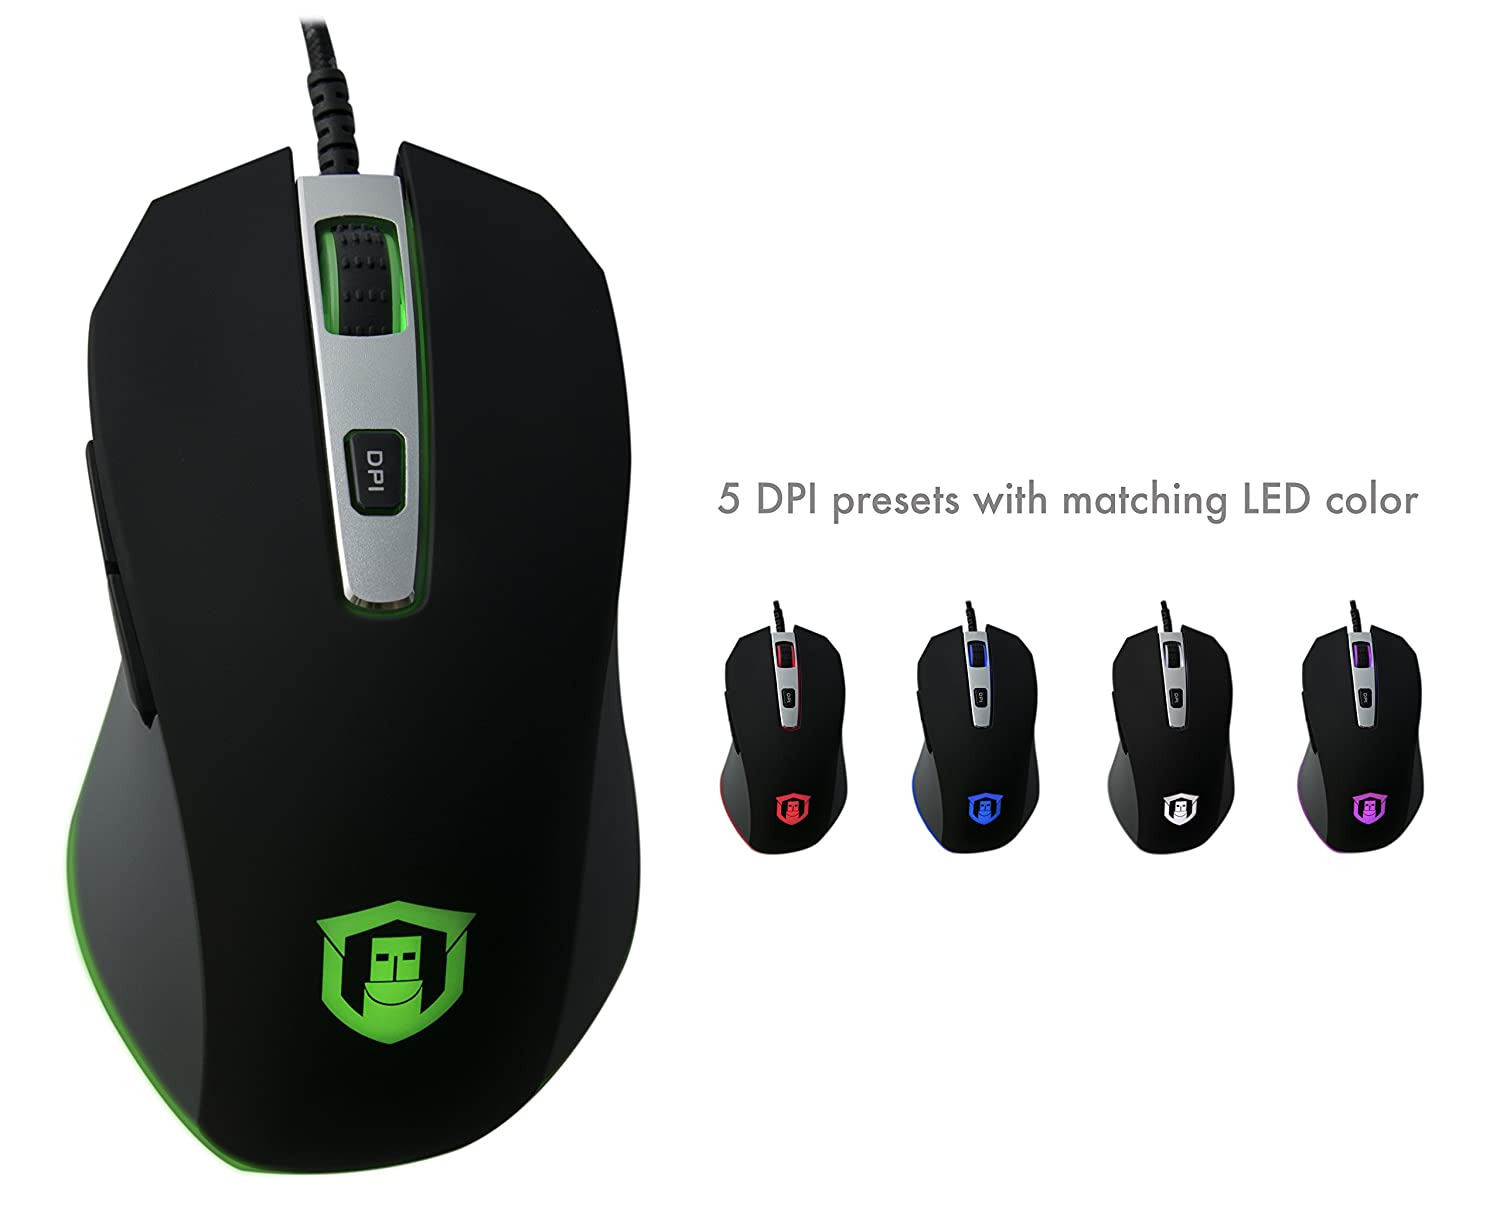 49f86e9297f Amazon.com: Plugable Performance Gaming Mouse - PixArt PMW 3360 Optical  Sensor - Omron Mechanical Switches - PTFE Mouse feet: Computers &  Accessories